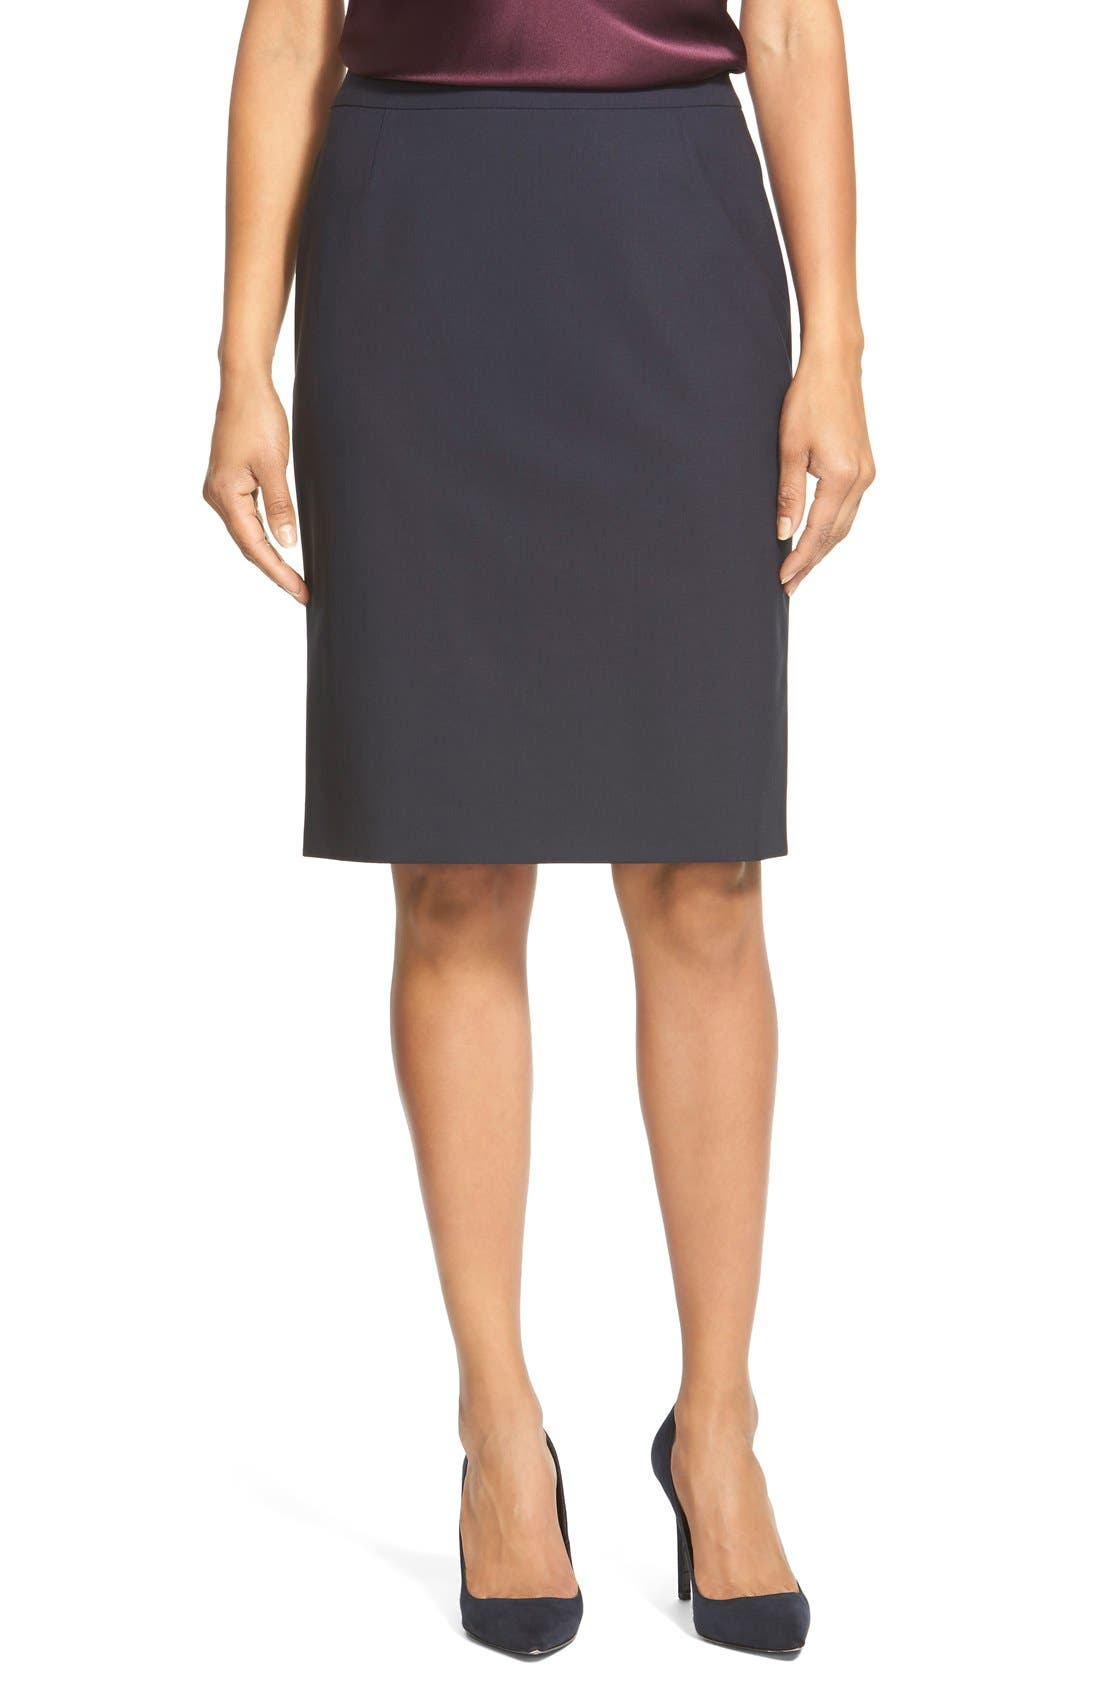 Vilea Tropical Stretch Wool Pencil Skirt,                             Main thumbnail 1, color,                             Navy